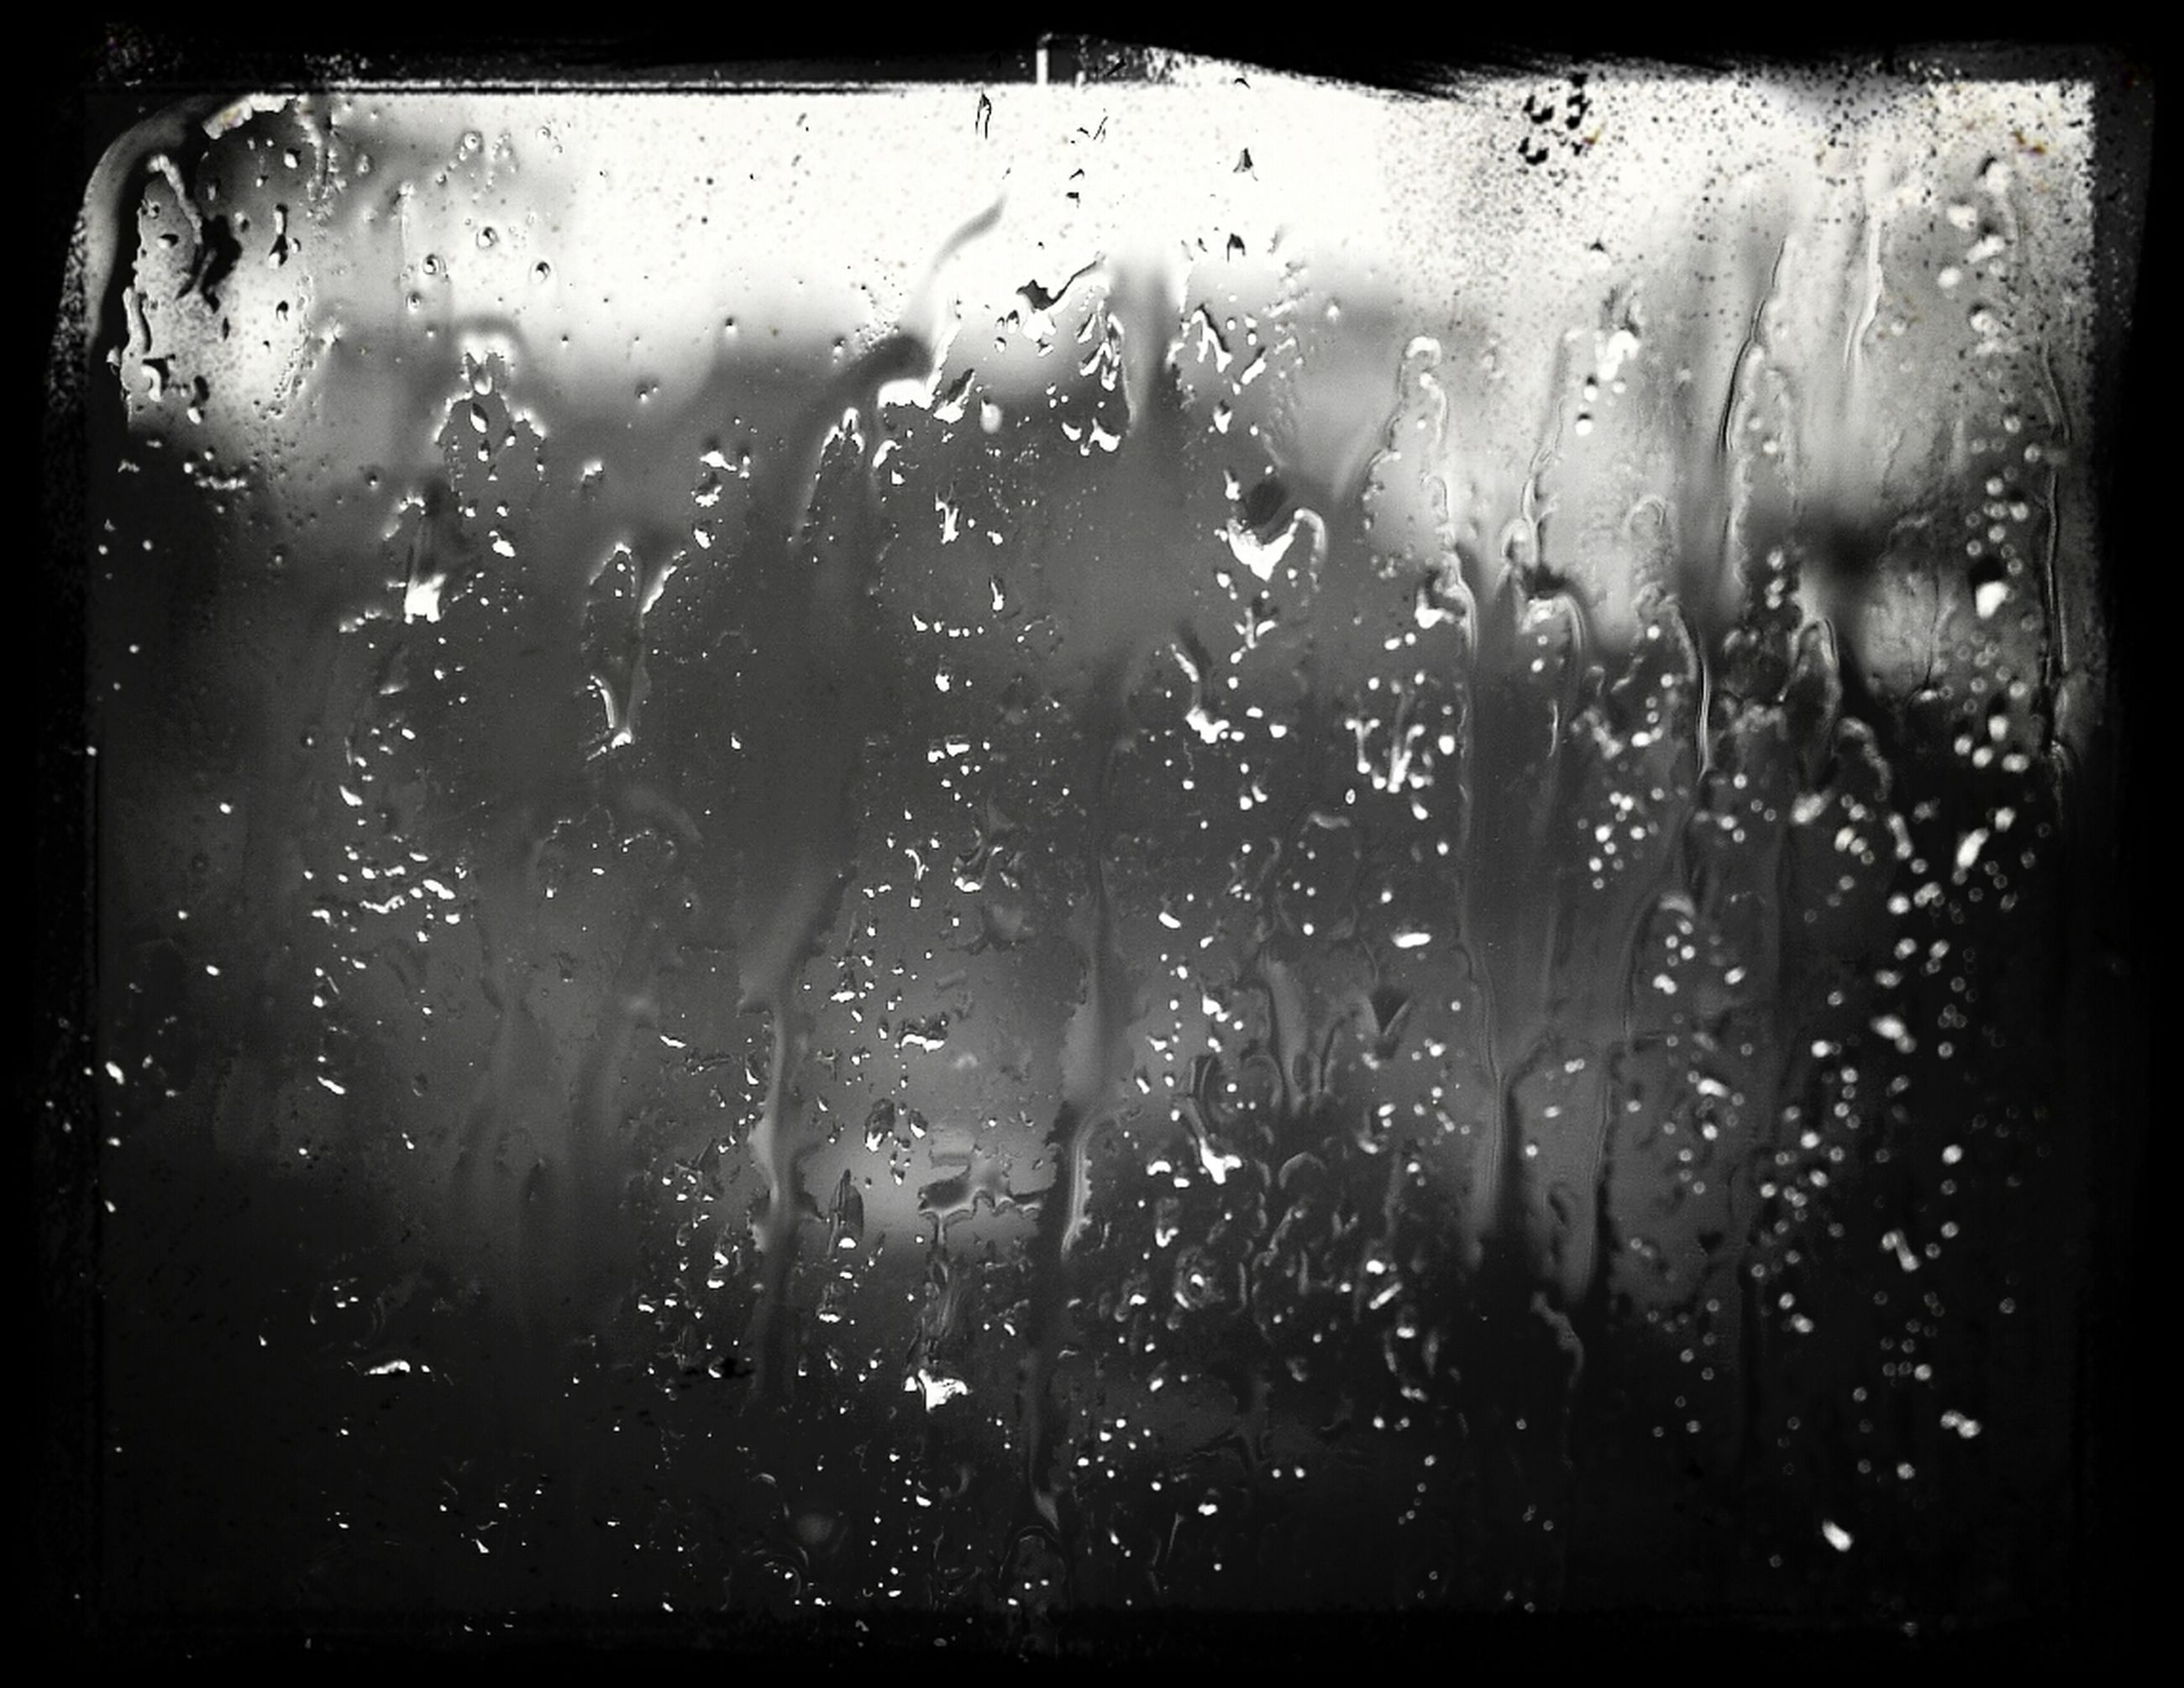 indoors, window, transparent, transfer print, glass - material, wet, rain, drop, auto post production filter, glass, vehicle interior, weather, lifestyles, men, water, full frame, silhouette, looking through window, raindrop